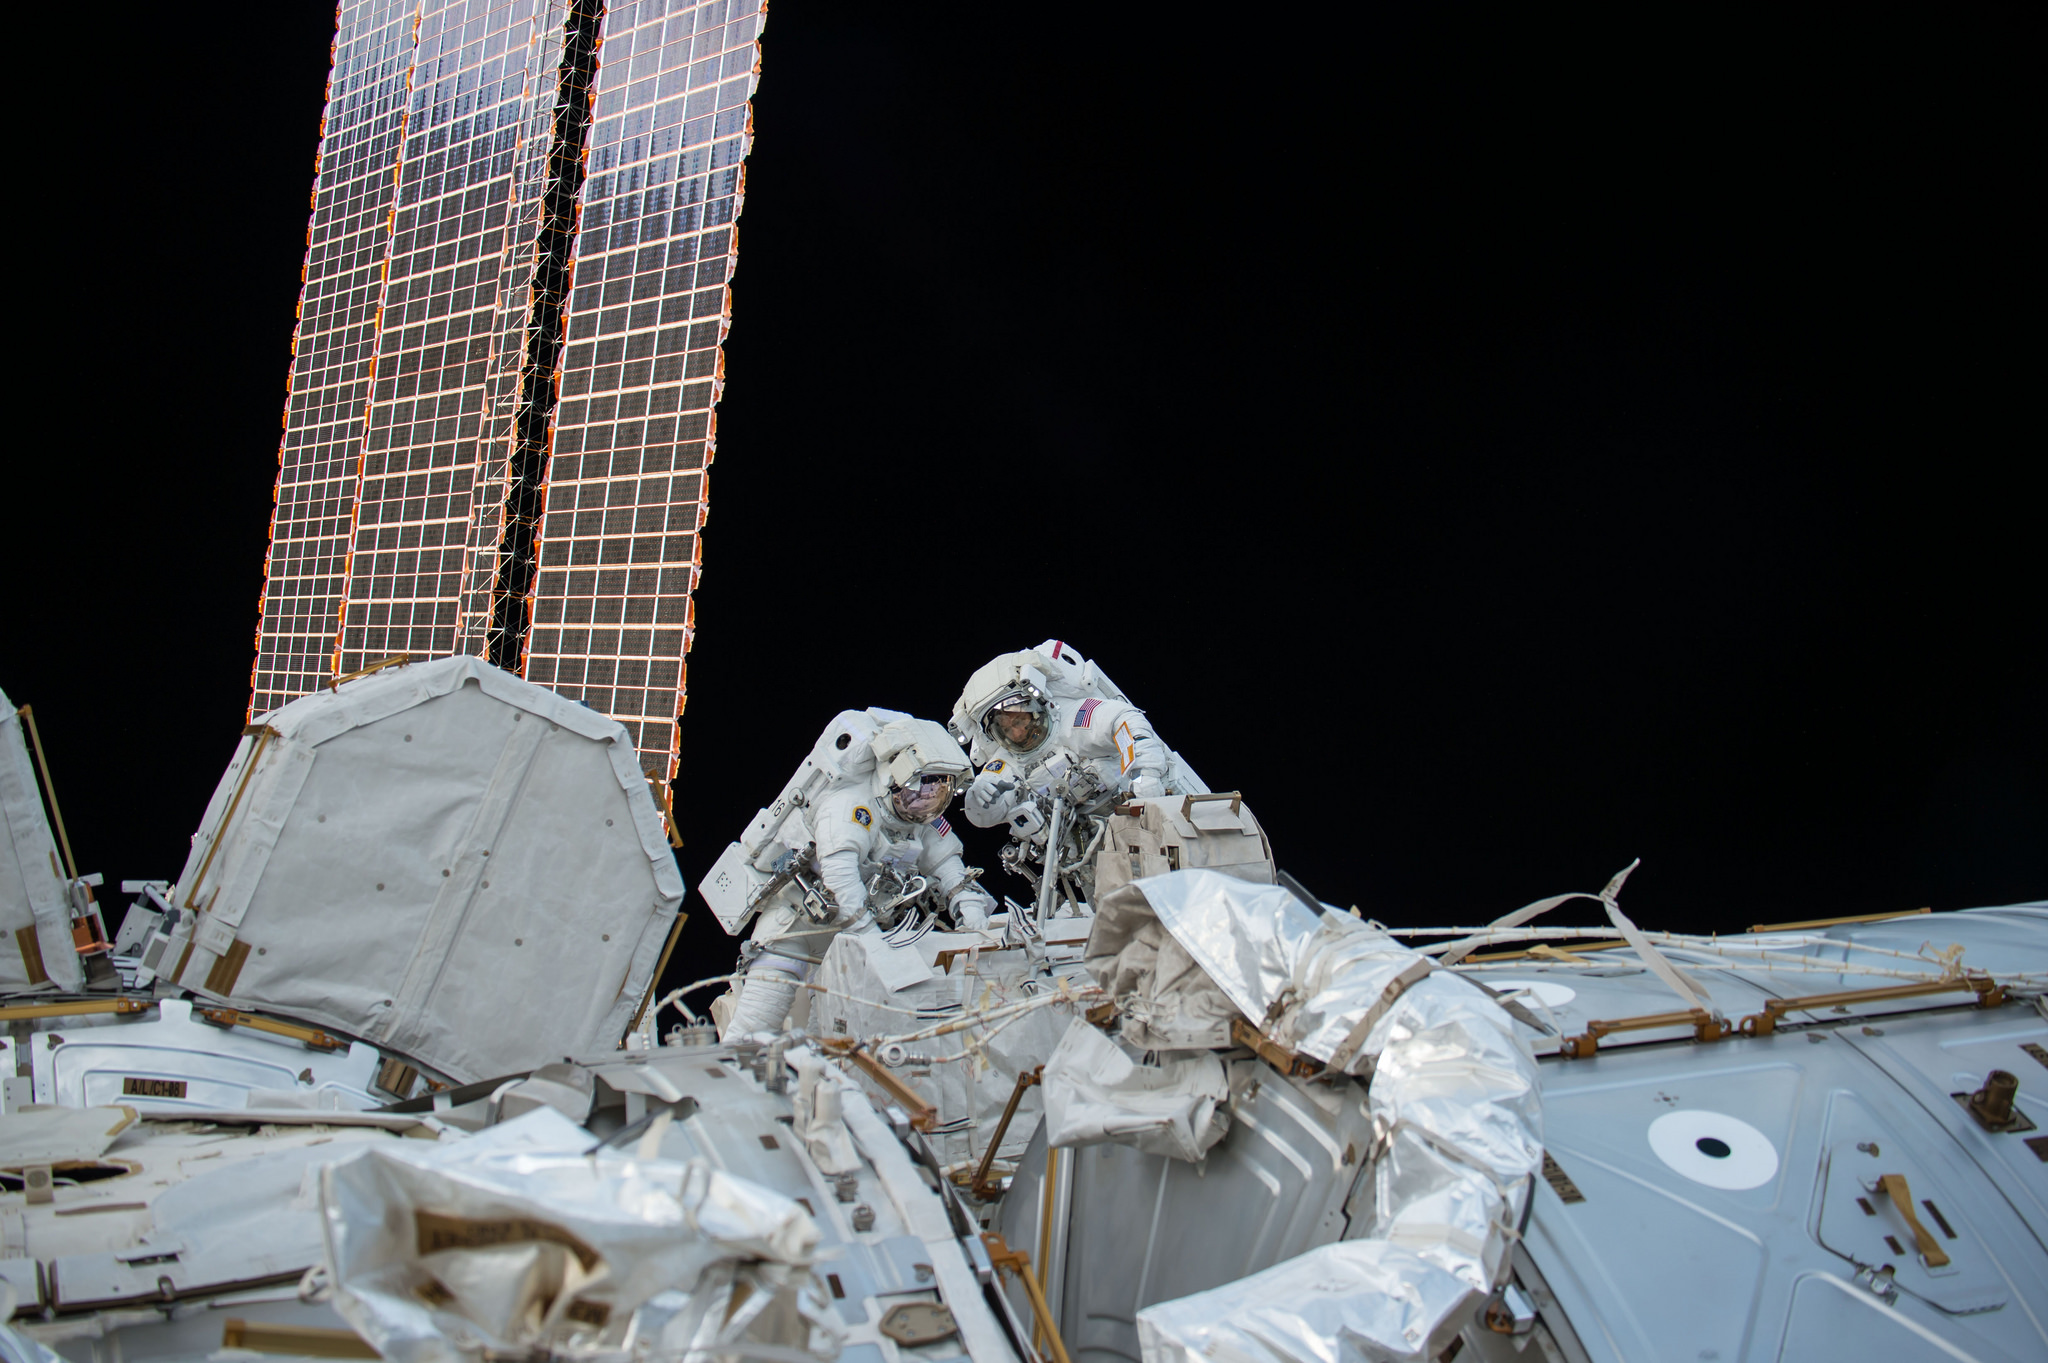 Mark Vande Hei and Randy Bresnik work outside the ISS to replace LEE-A. Credit: NASA